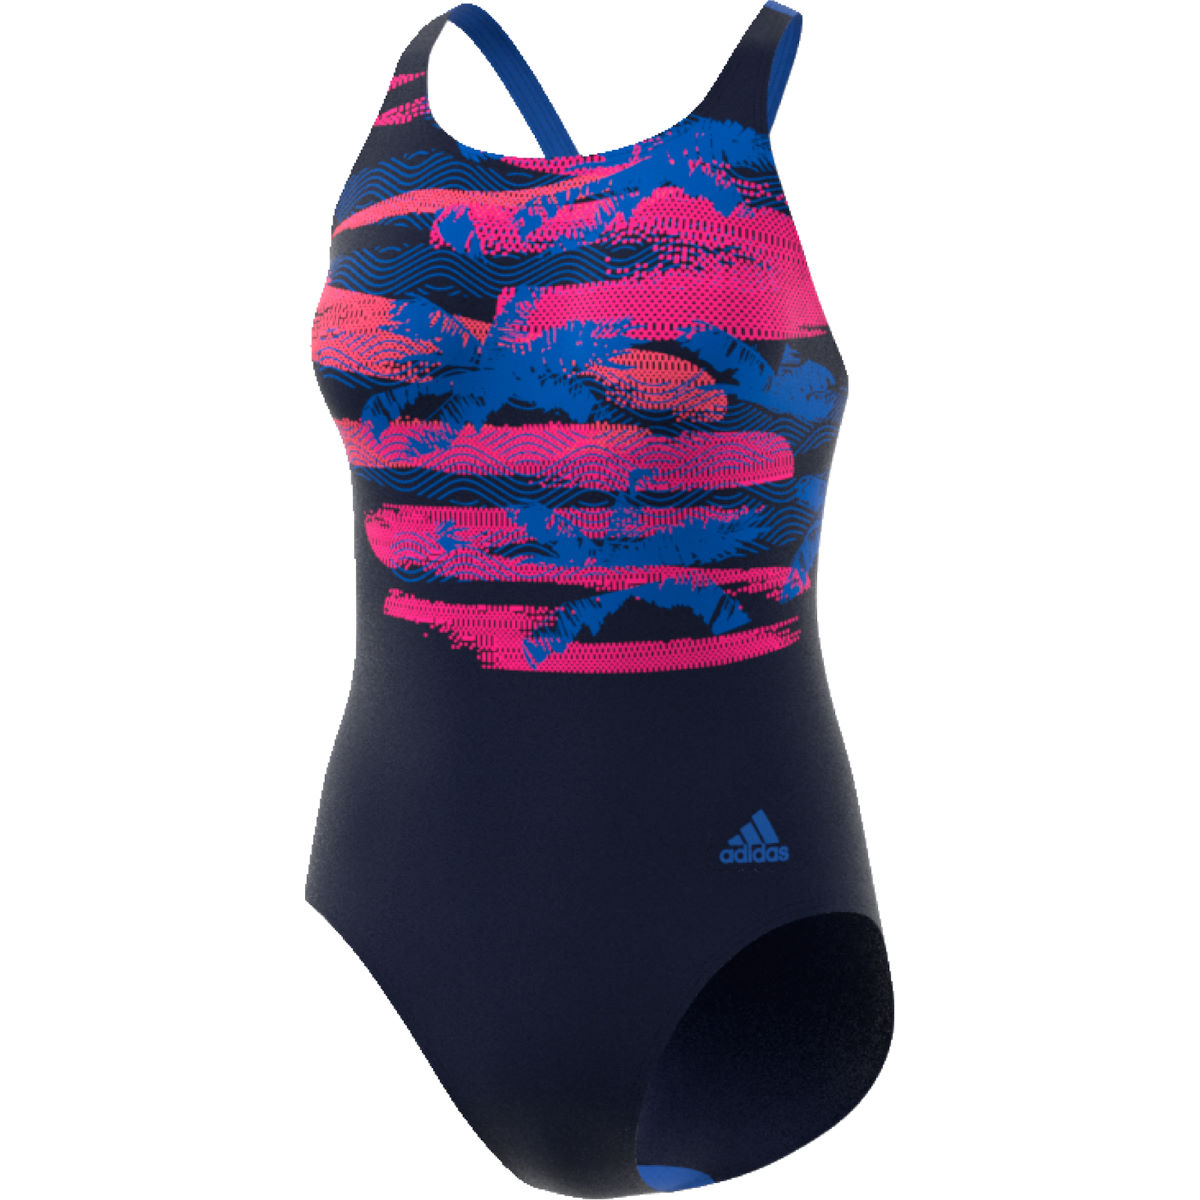 Maillot de bain Femme adidas Fitness Training Placed Print - 34''